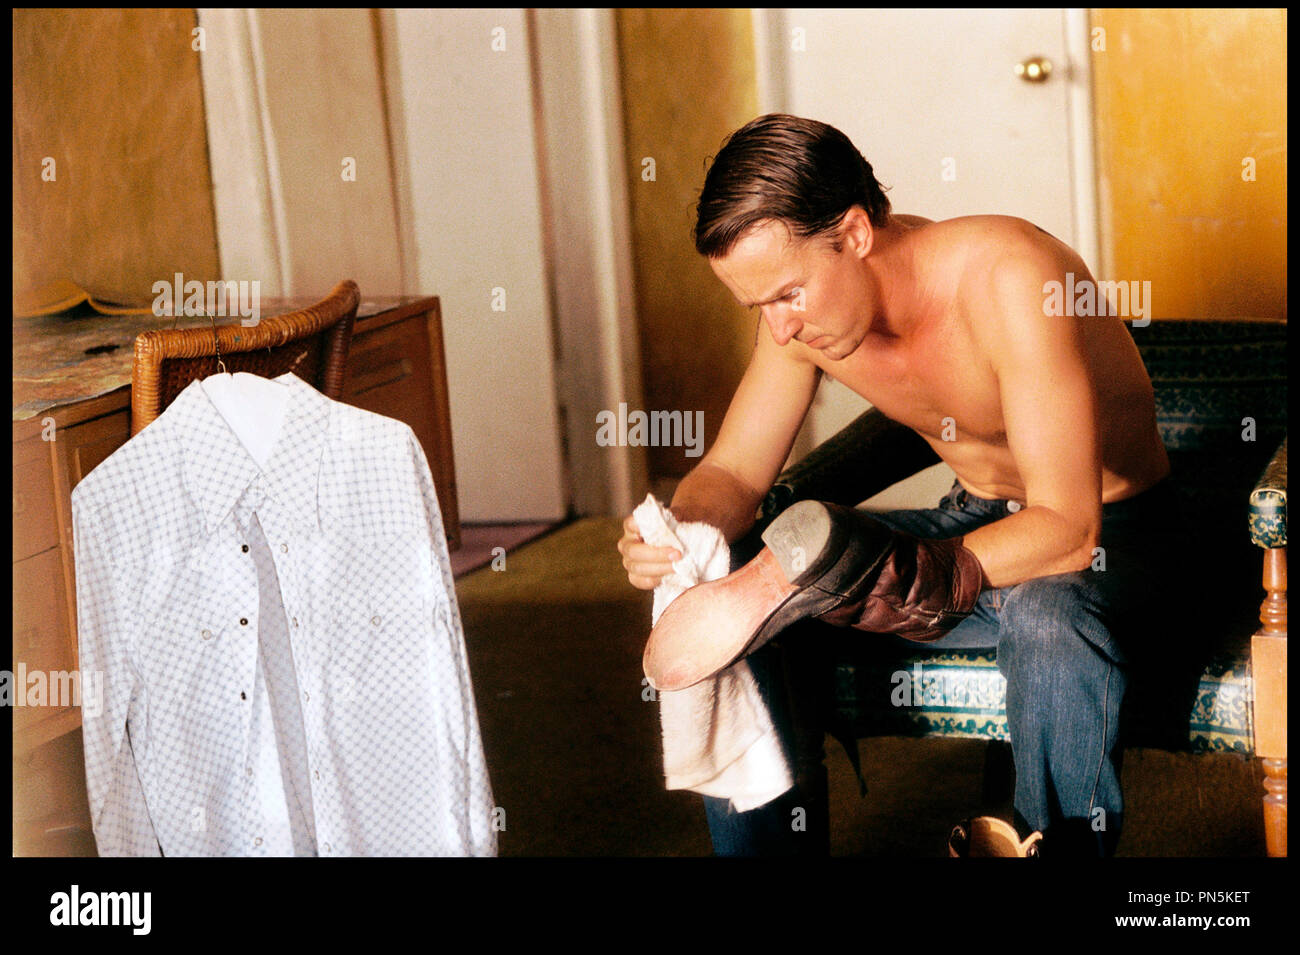 Prod DB © Elements Films - Class 5 / DR DOWN IN THE VALLEY (DOWN IN THE VALLEY) de David Jacobson 2005 USA avec Edward Norton torse nu, cirer ses chaussures, cirage, botte, - Stock Image